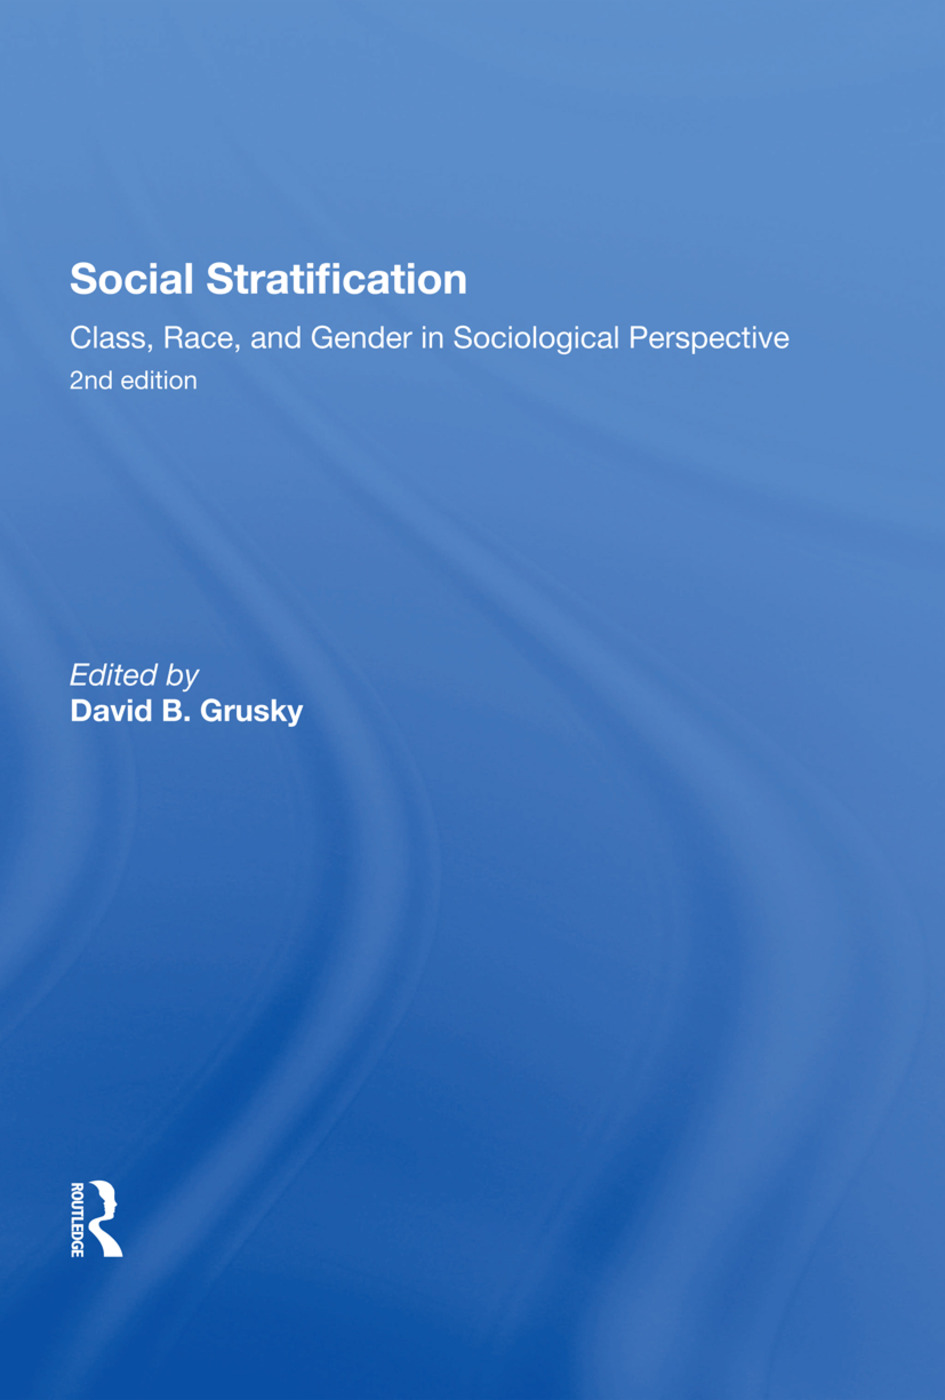 Social Stratification, Class, Race, and Gender in Sociological Perspective, Second Edition: 1st Edition (Hardback) book cover